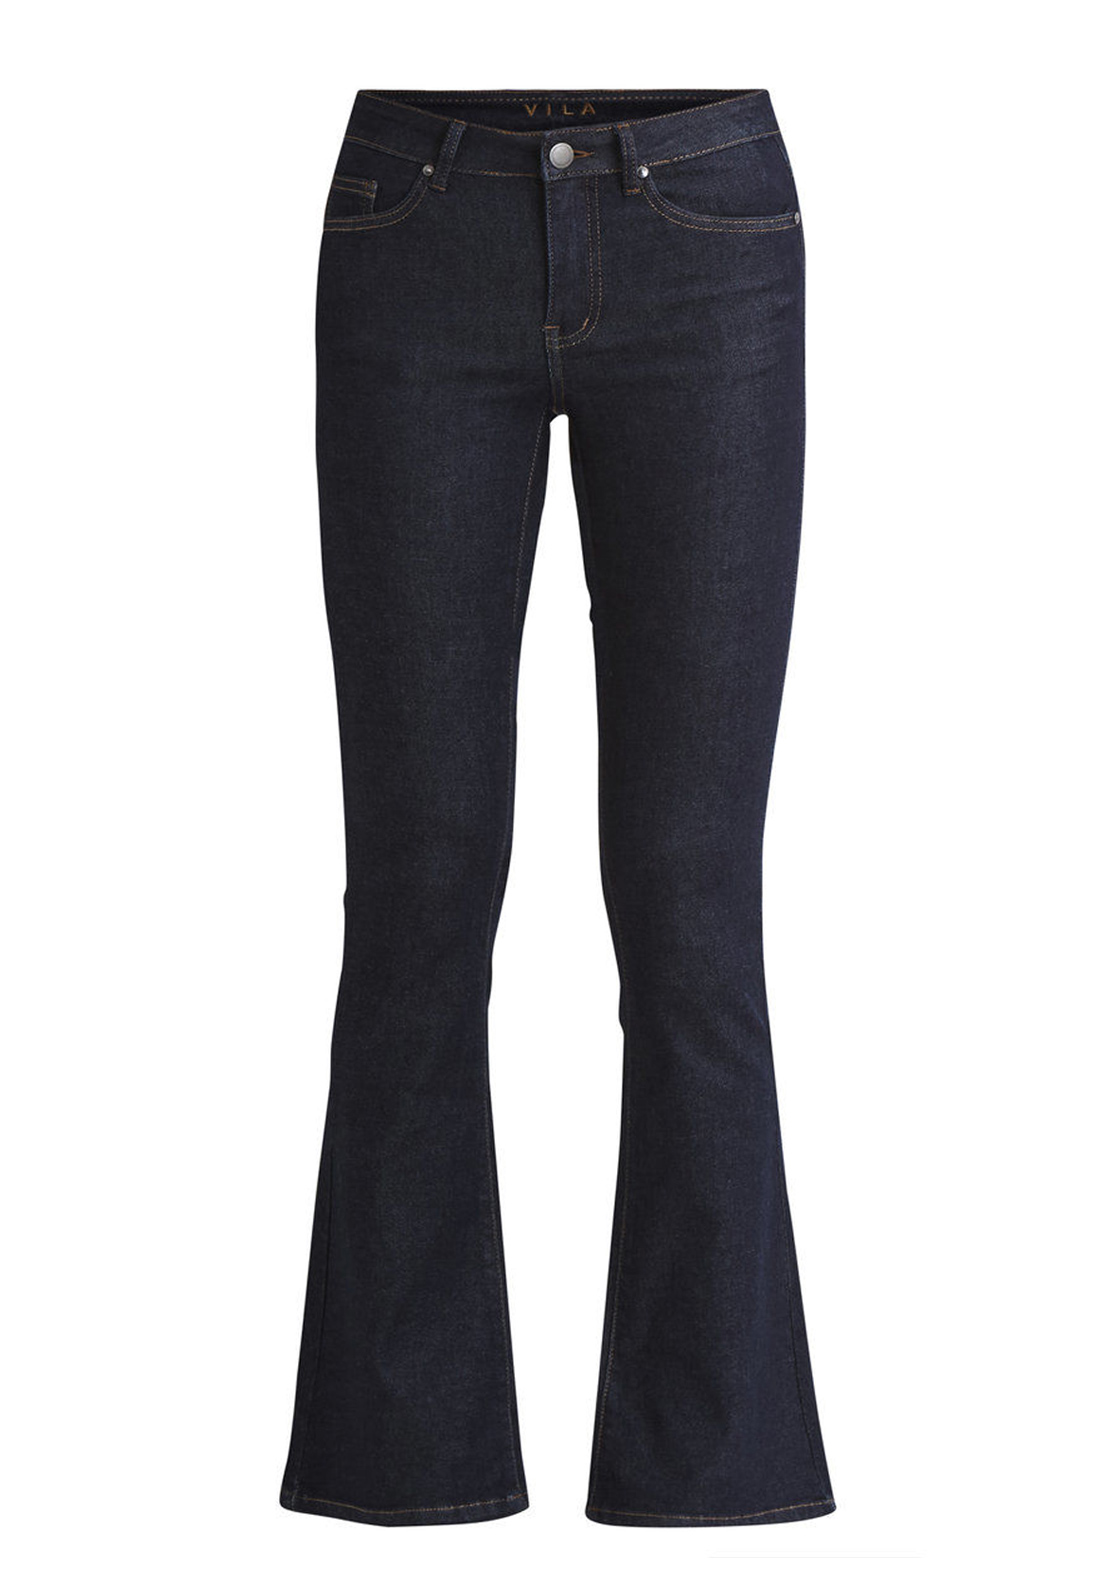 Vila Calm Flared Jeans, Dark Blue